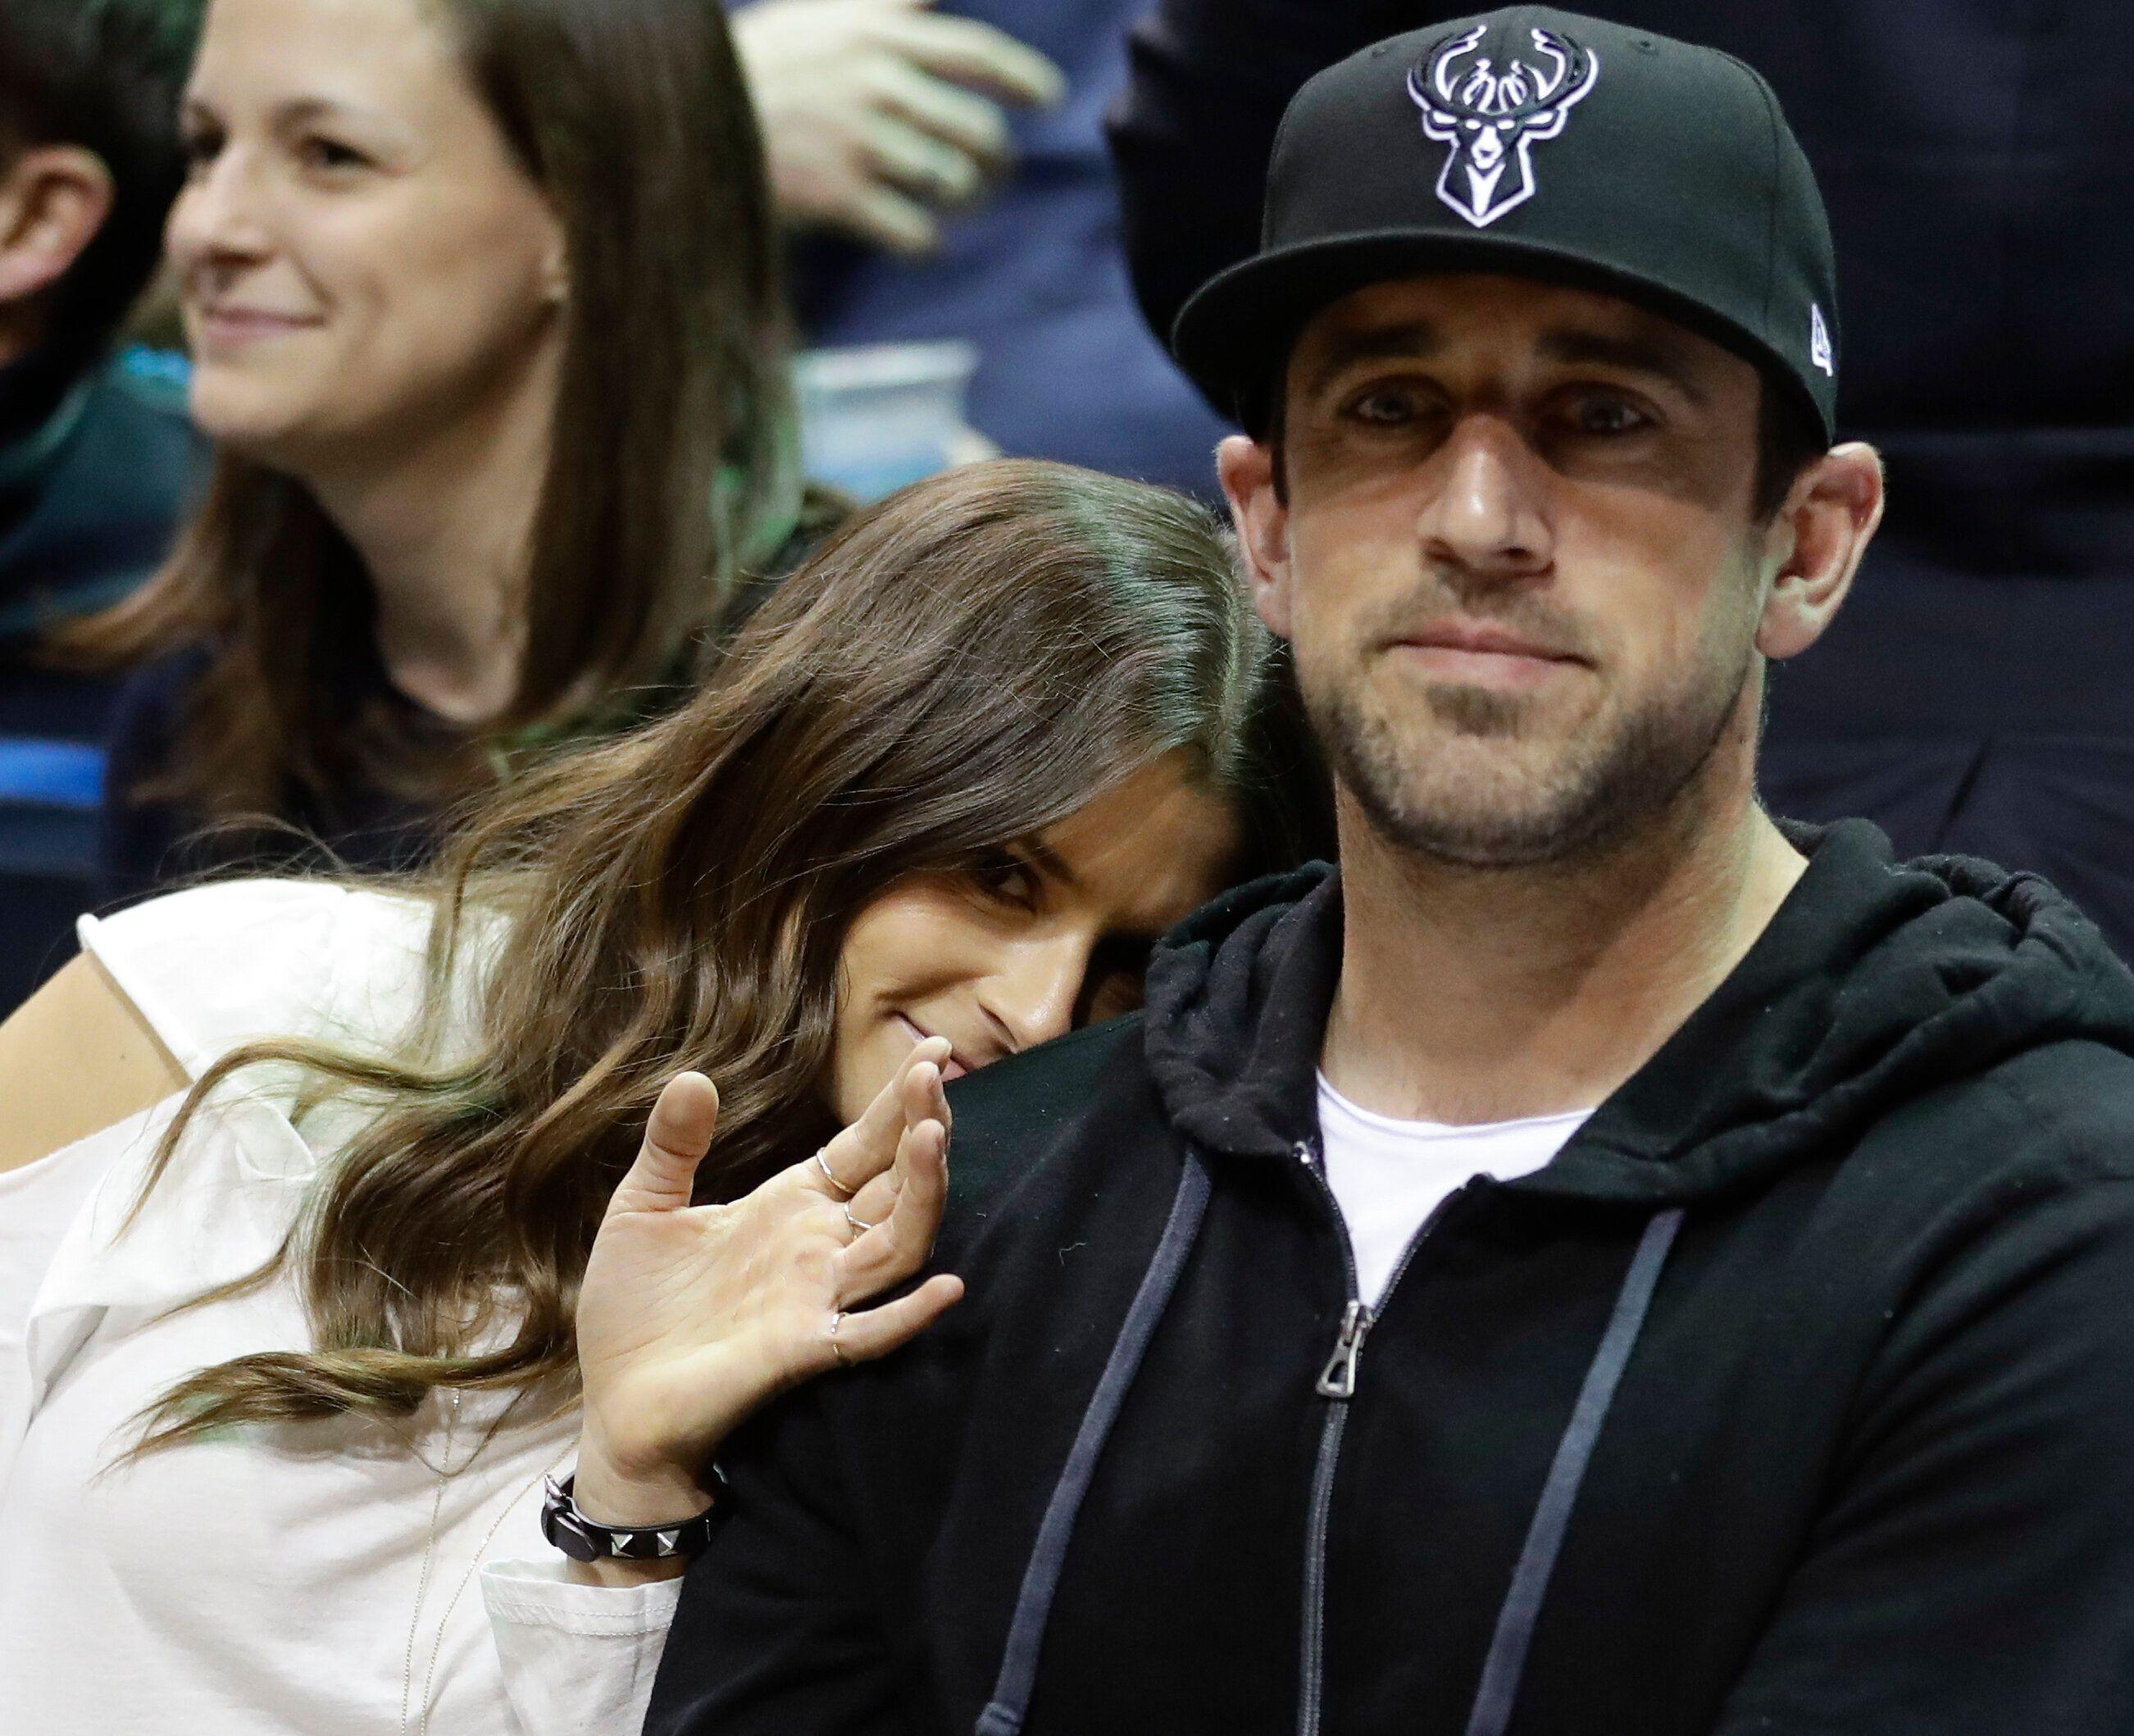 Aaron Rodgers does not do Wisconsin proud with shameful beer chug at Bucks game